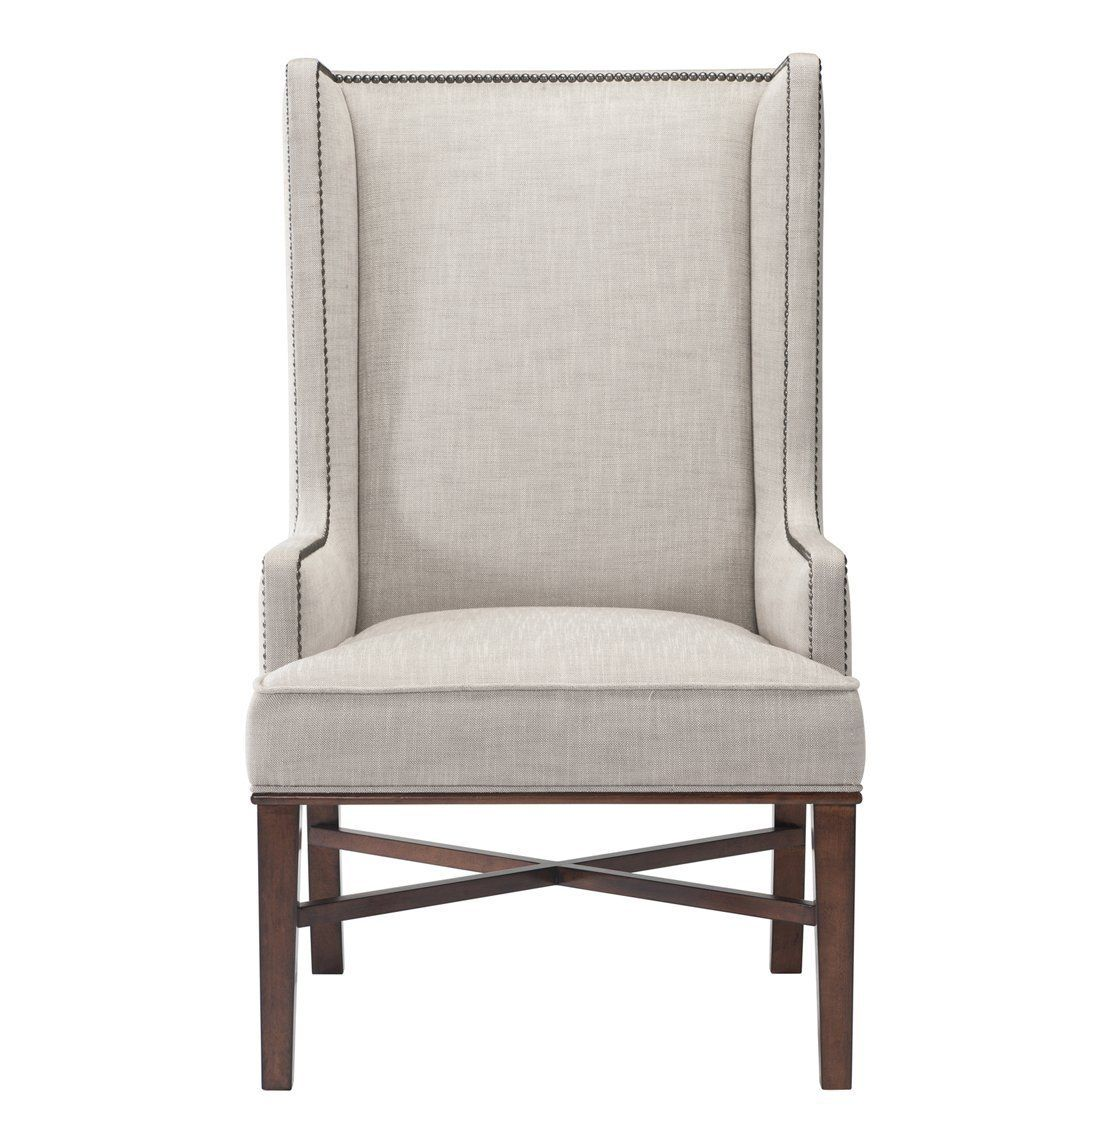 17 Outstanding Wingback Dining Chair Designs Charming Vanilla